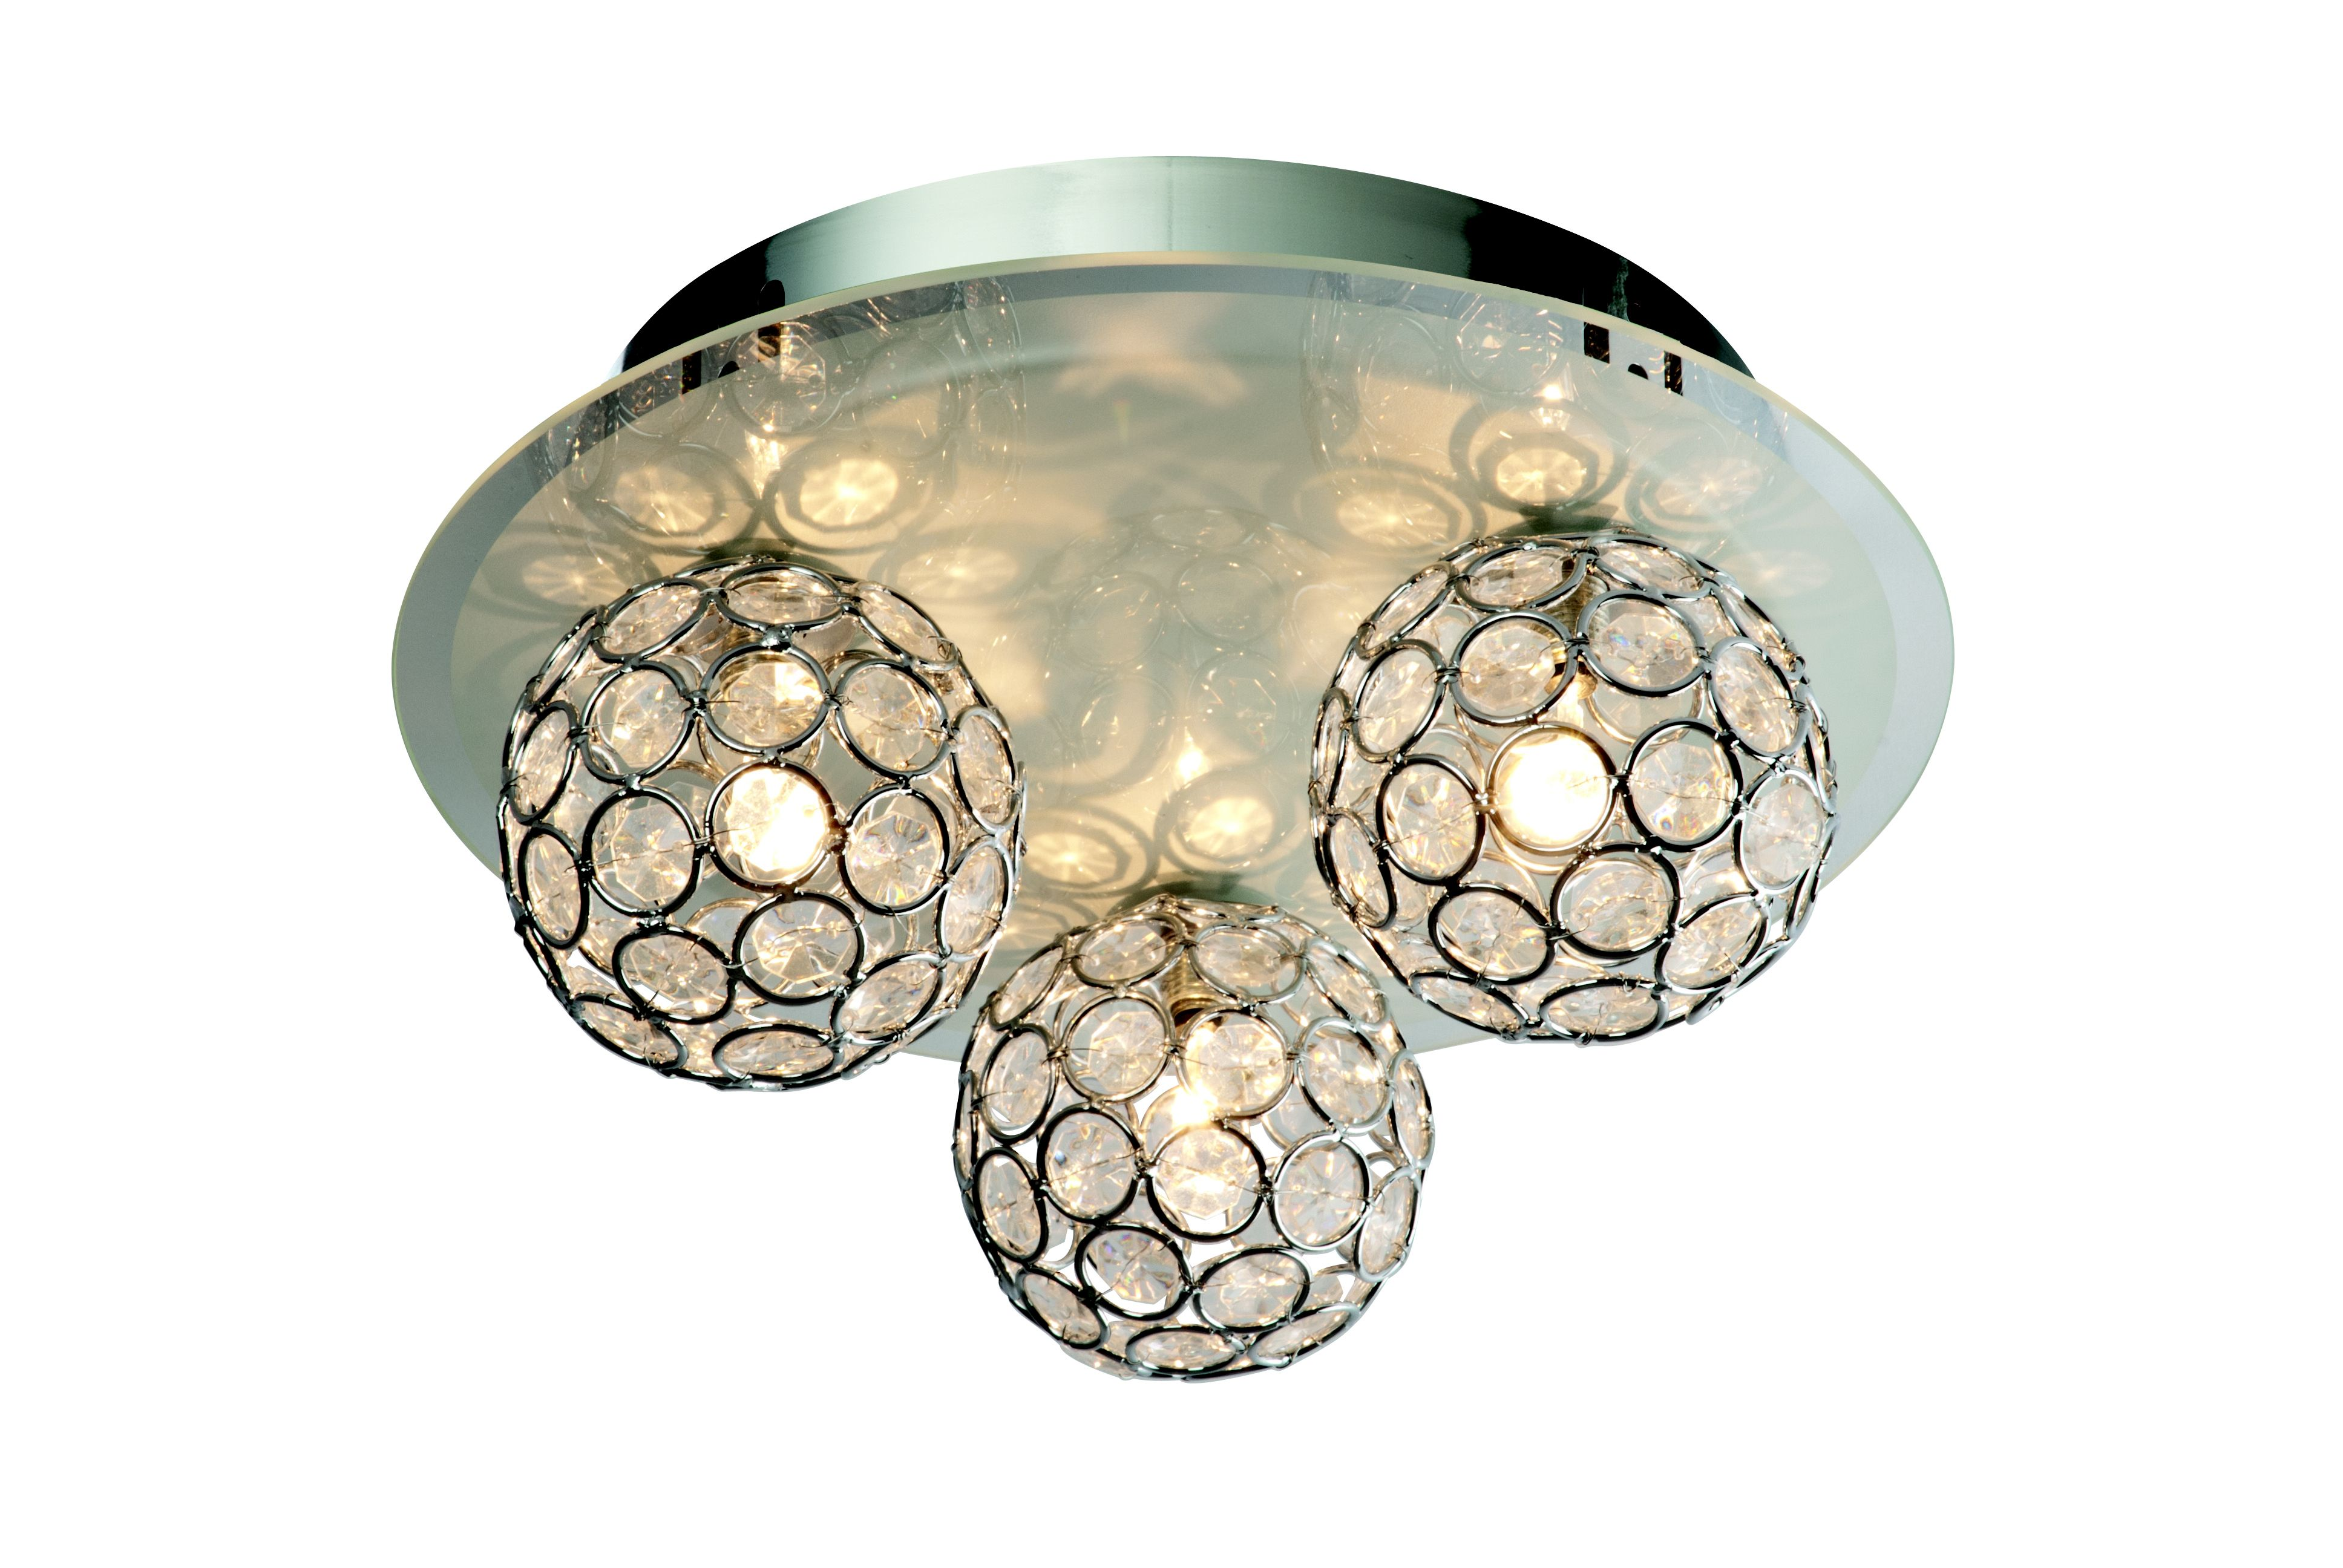 Diy at bq chameleon crystal circle colour changing 3 lamp ceiling light aloadofball Images